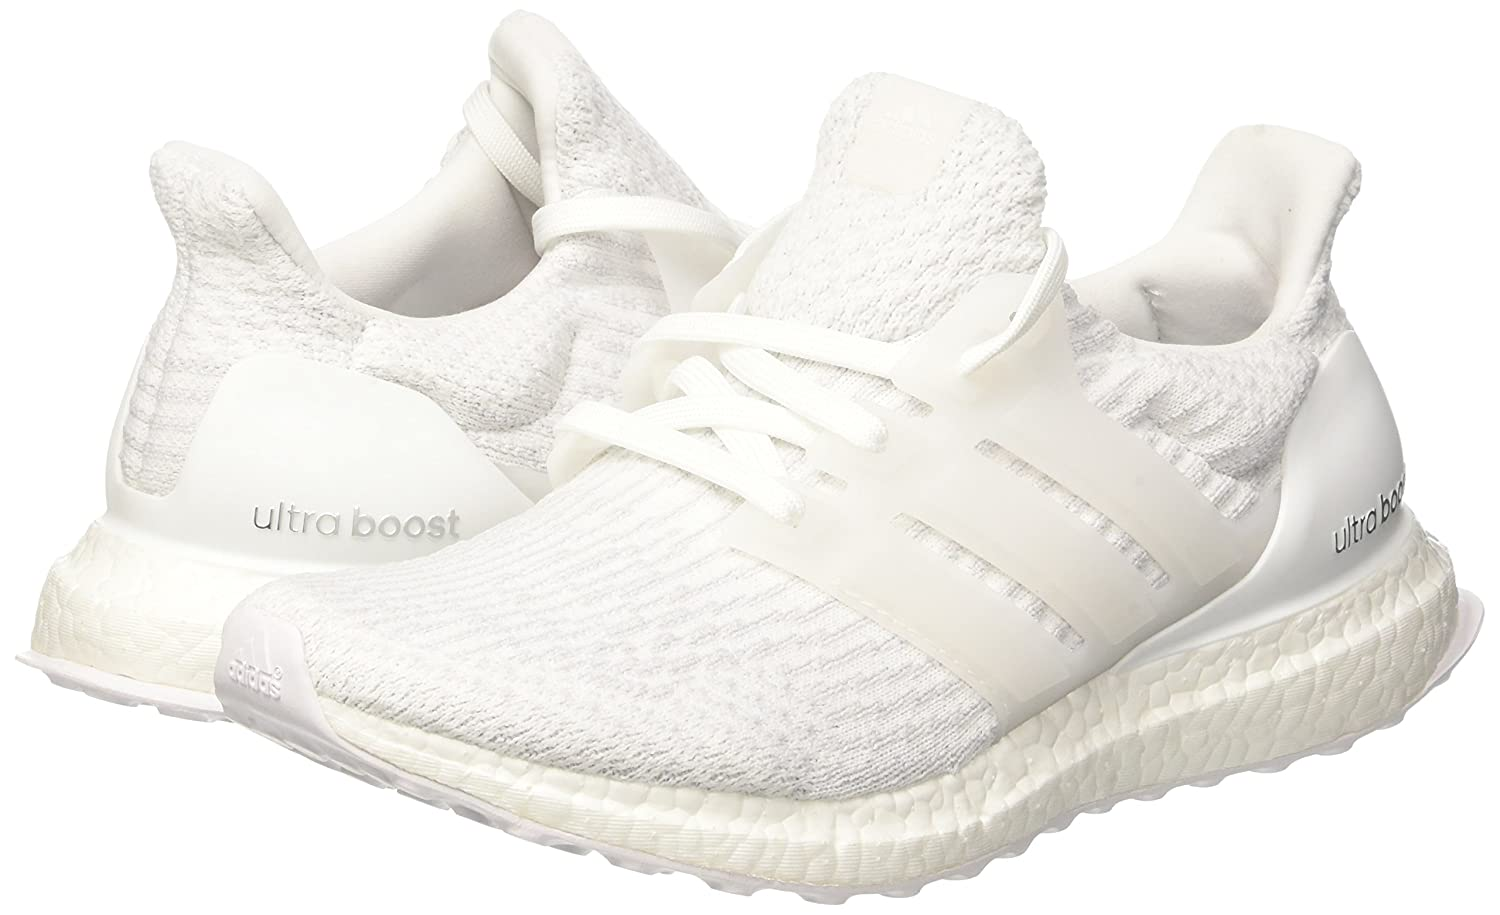 Ftwwht/Crywht Running Shoes-9.5